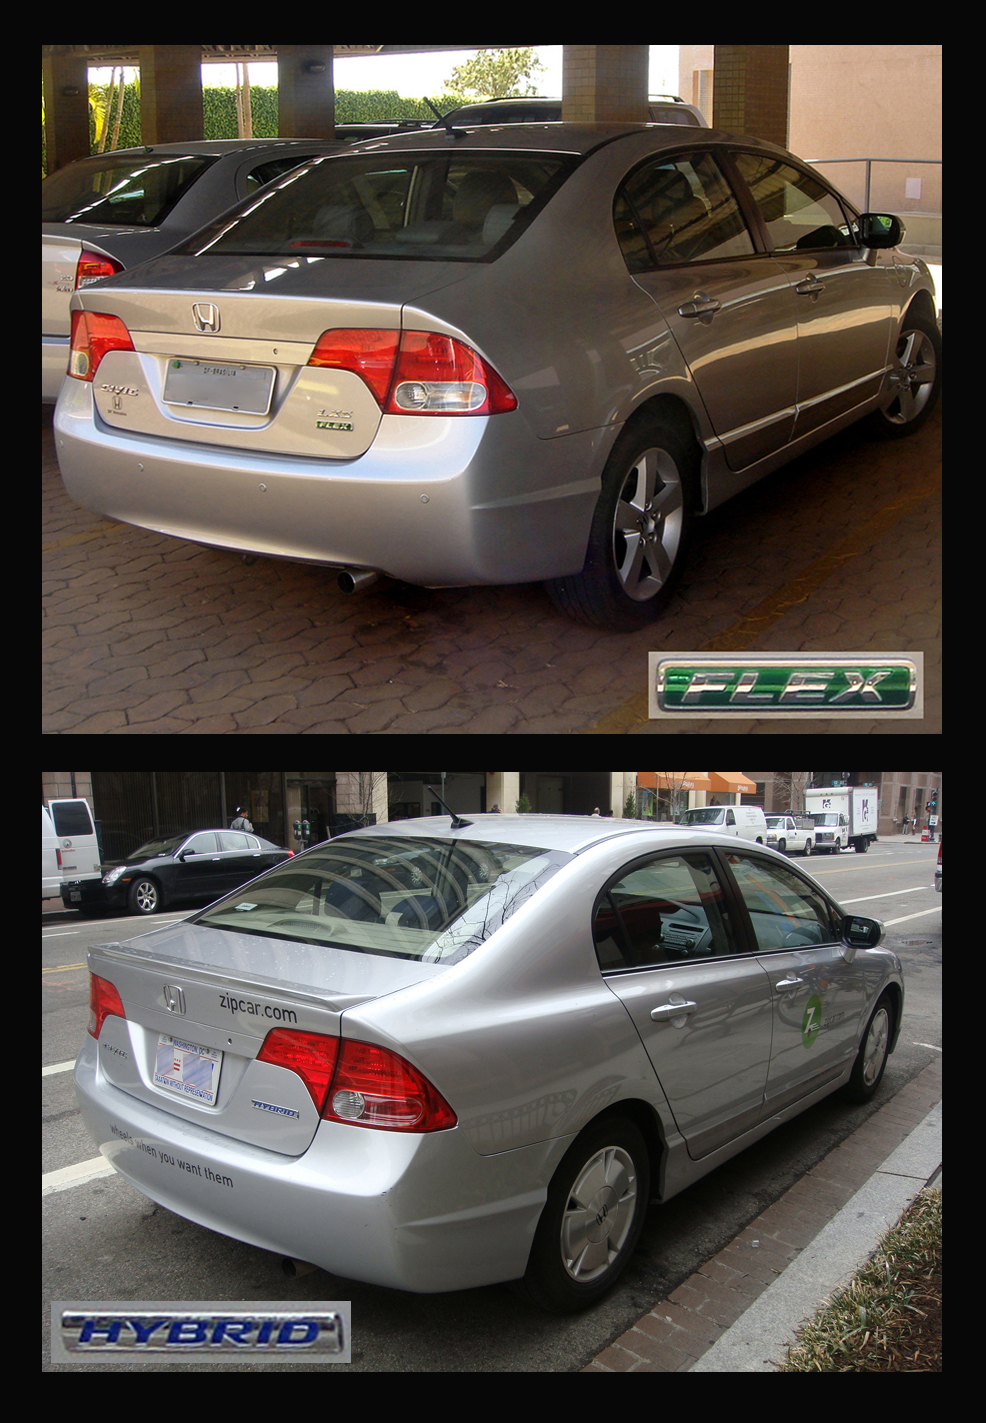 English Two Clean Vehicle Versions Of The Honda Civic On Top A Brazilian Flexible